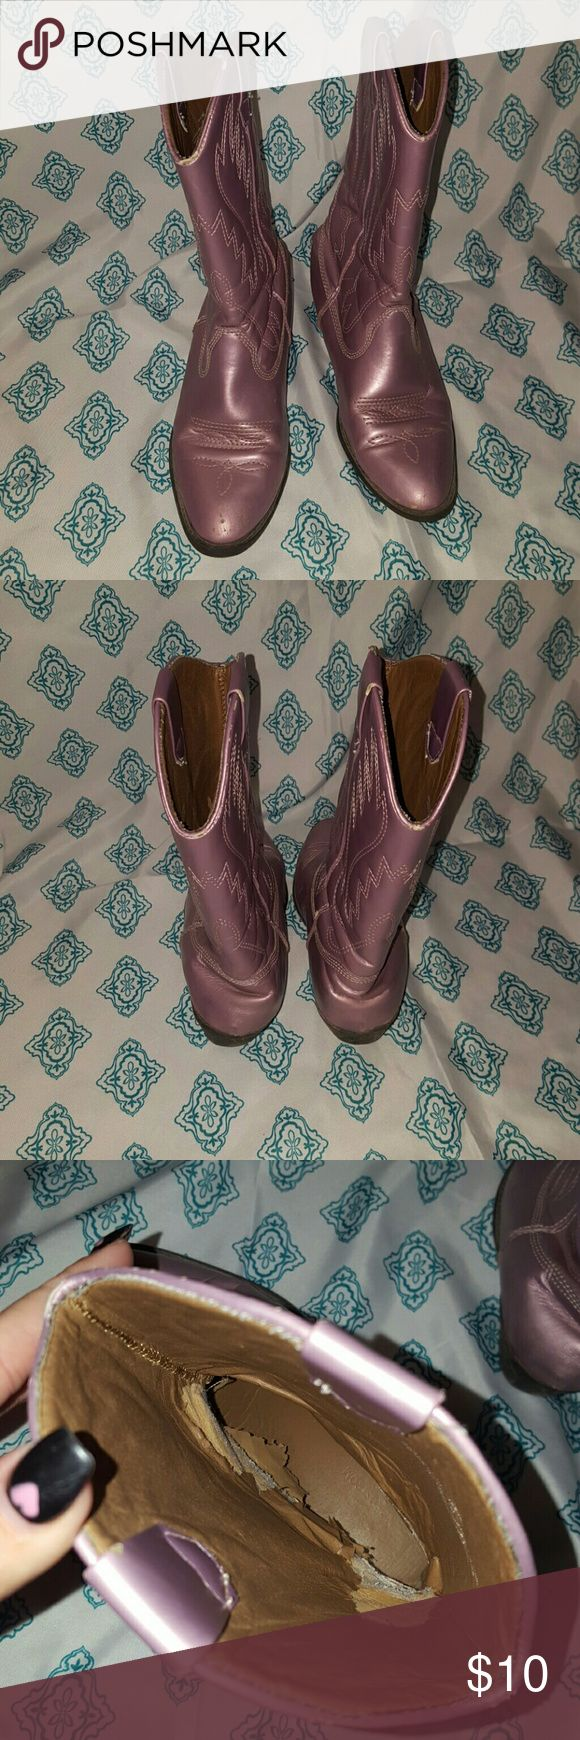 Nordstrom boots Cute metallic lavender color boots Some scuffs. Peeling on insides. Creasing See photos Nordstrom Shoes Boots